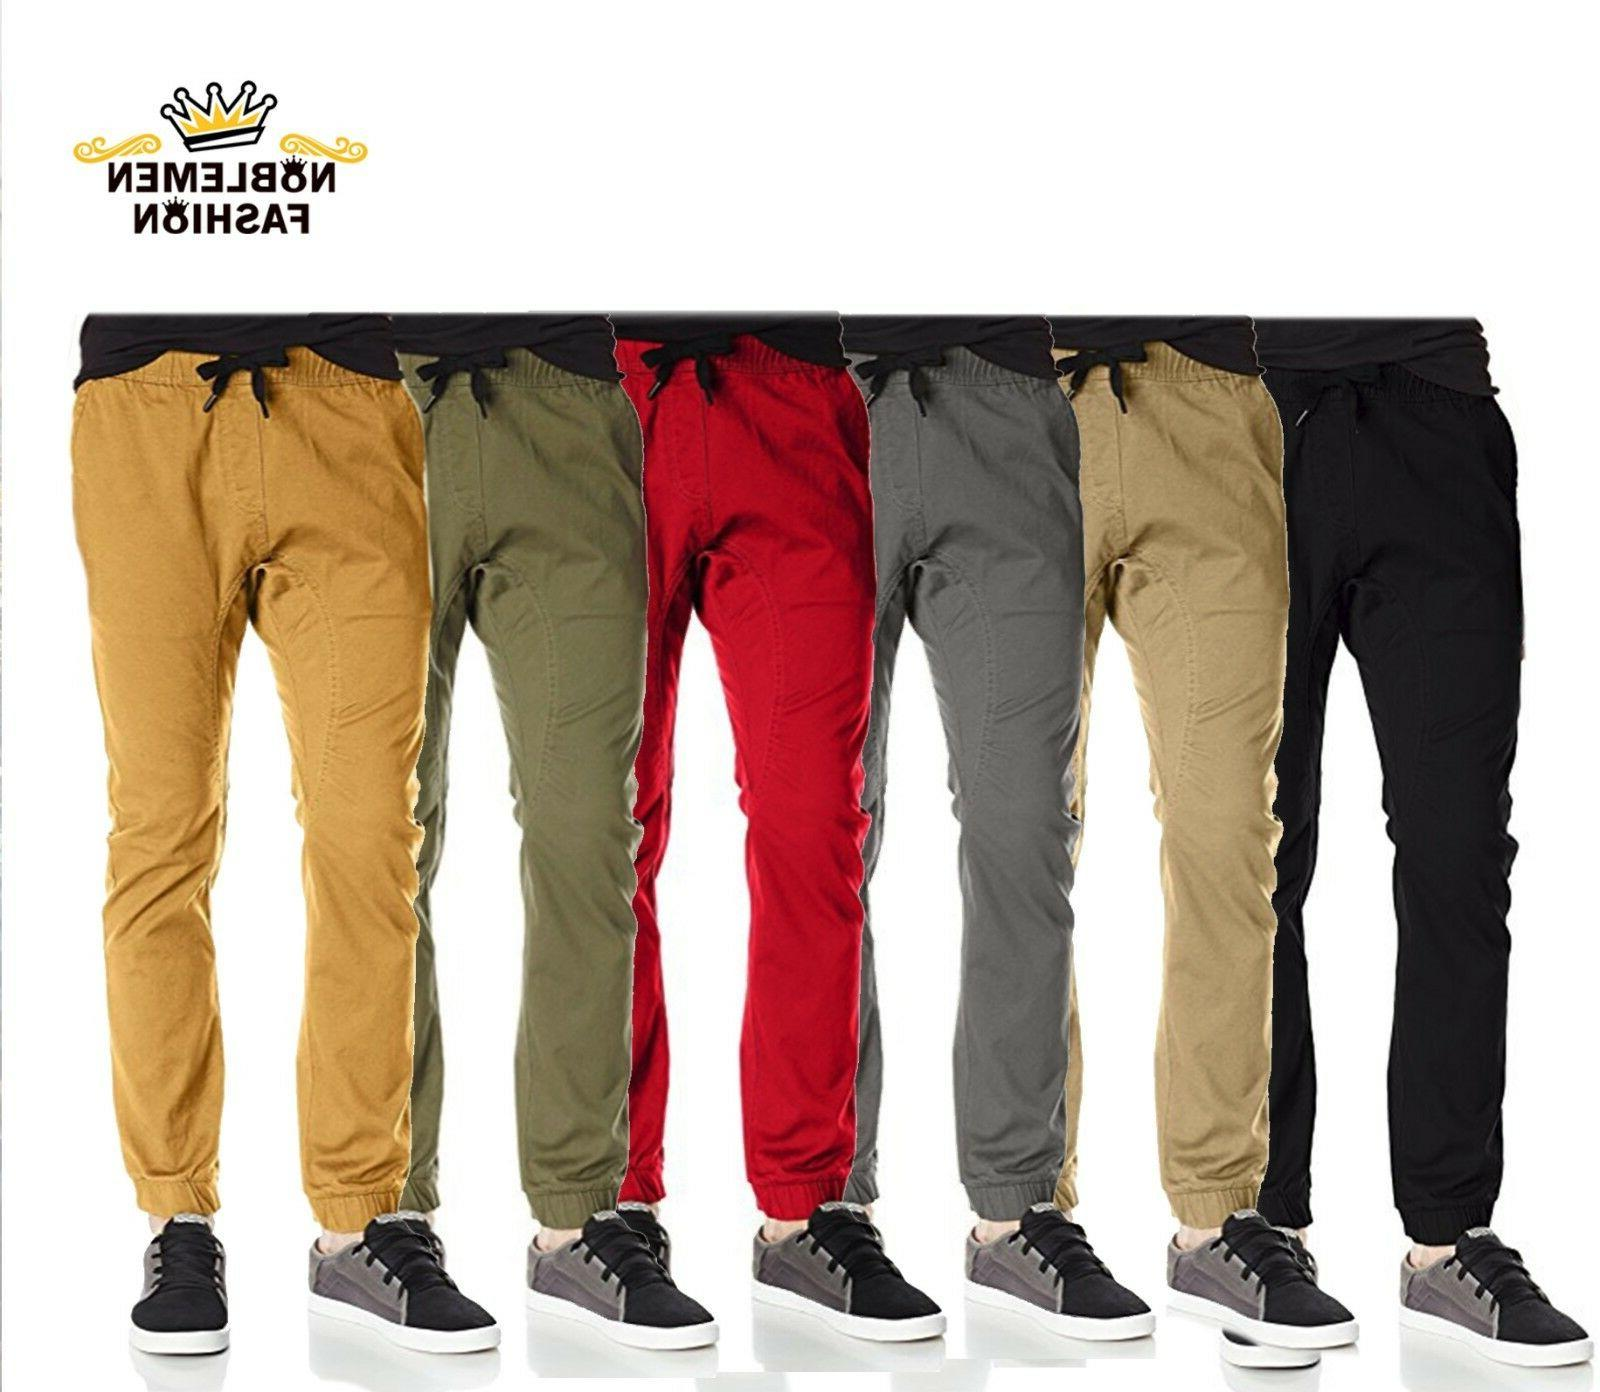 men joggers pants twill stretch fit casual